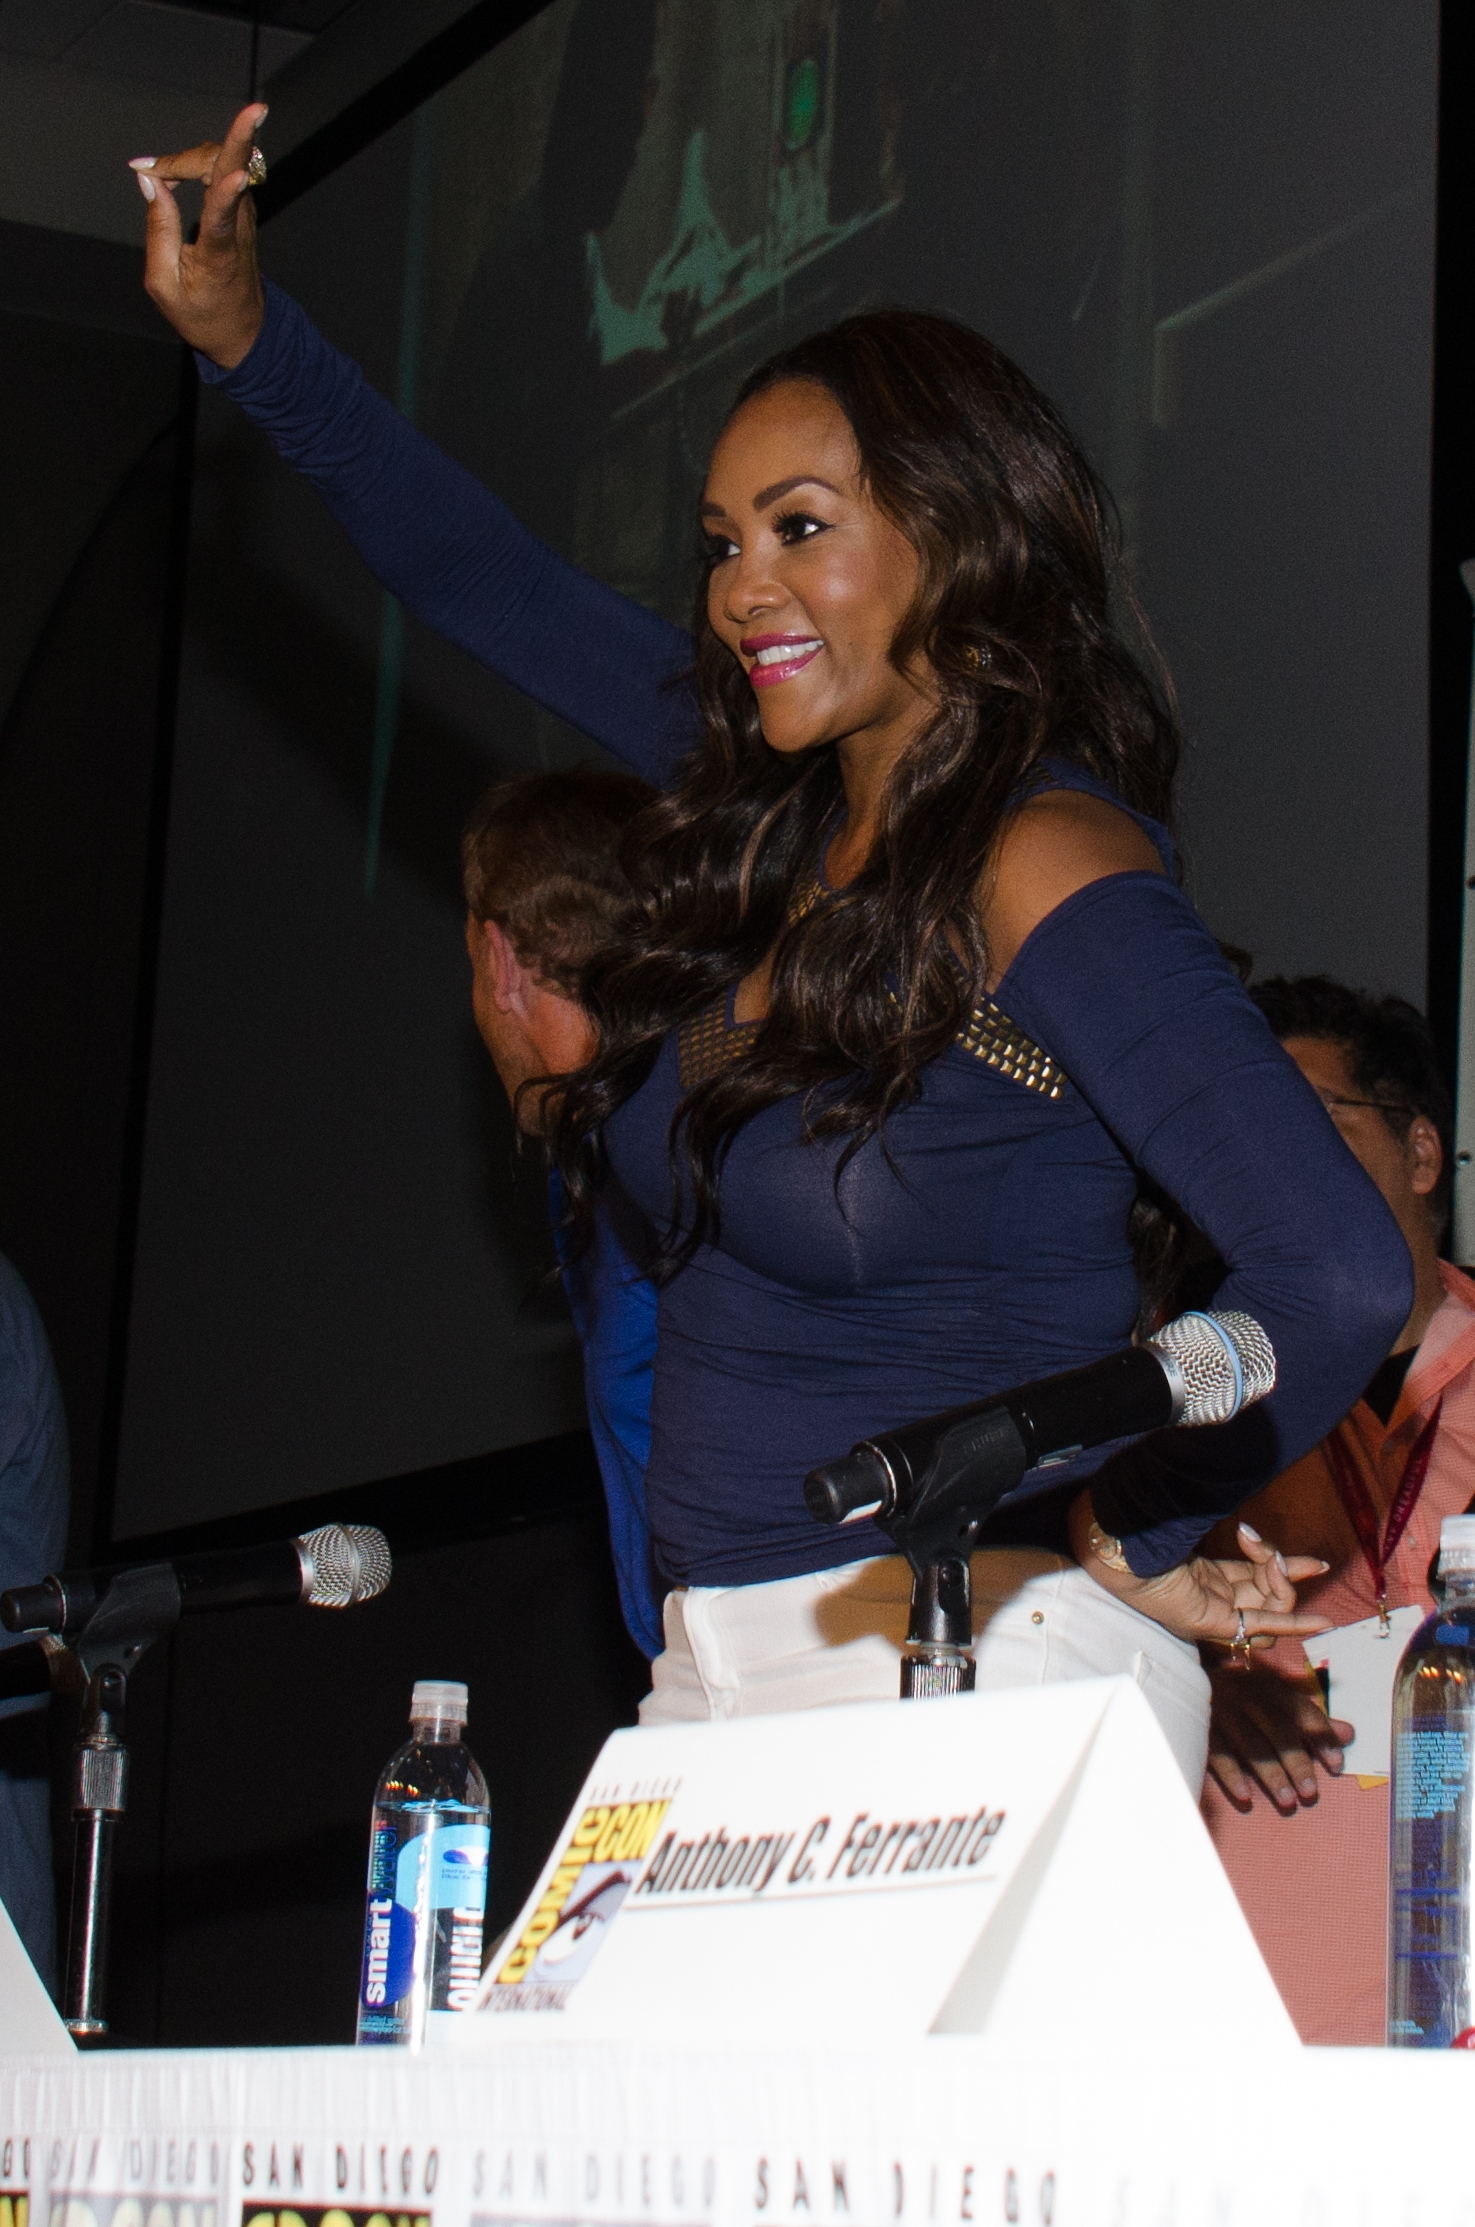 """Vivica A. Fox attends the """"Sharknado"""" panel on Day 1 of Comic-Con International on July 24. Fox wears jewelry from a Buffalo designer in Sharknado 2: The Second One. Photo by Tonya Wise/Invision/AP)"""